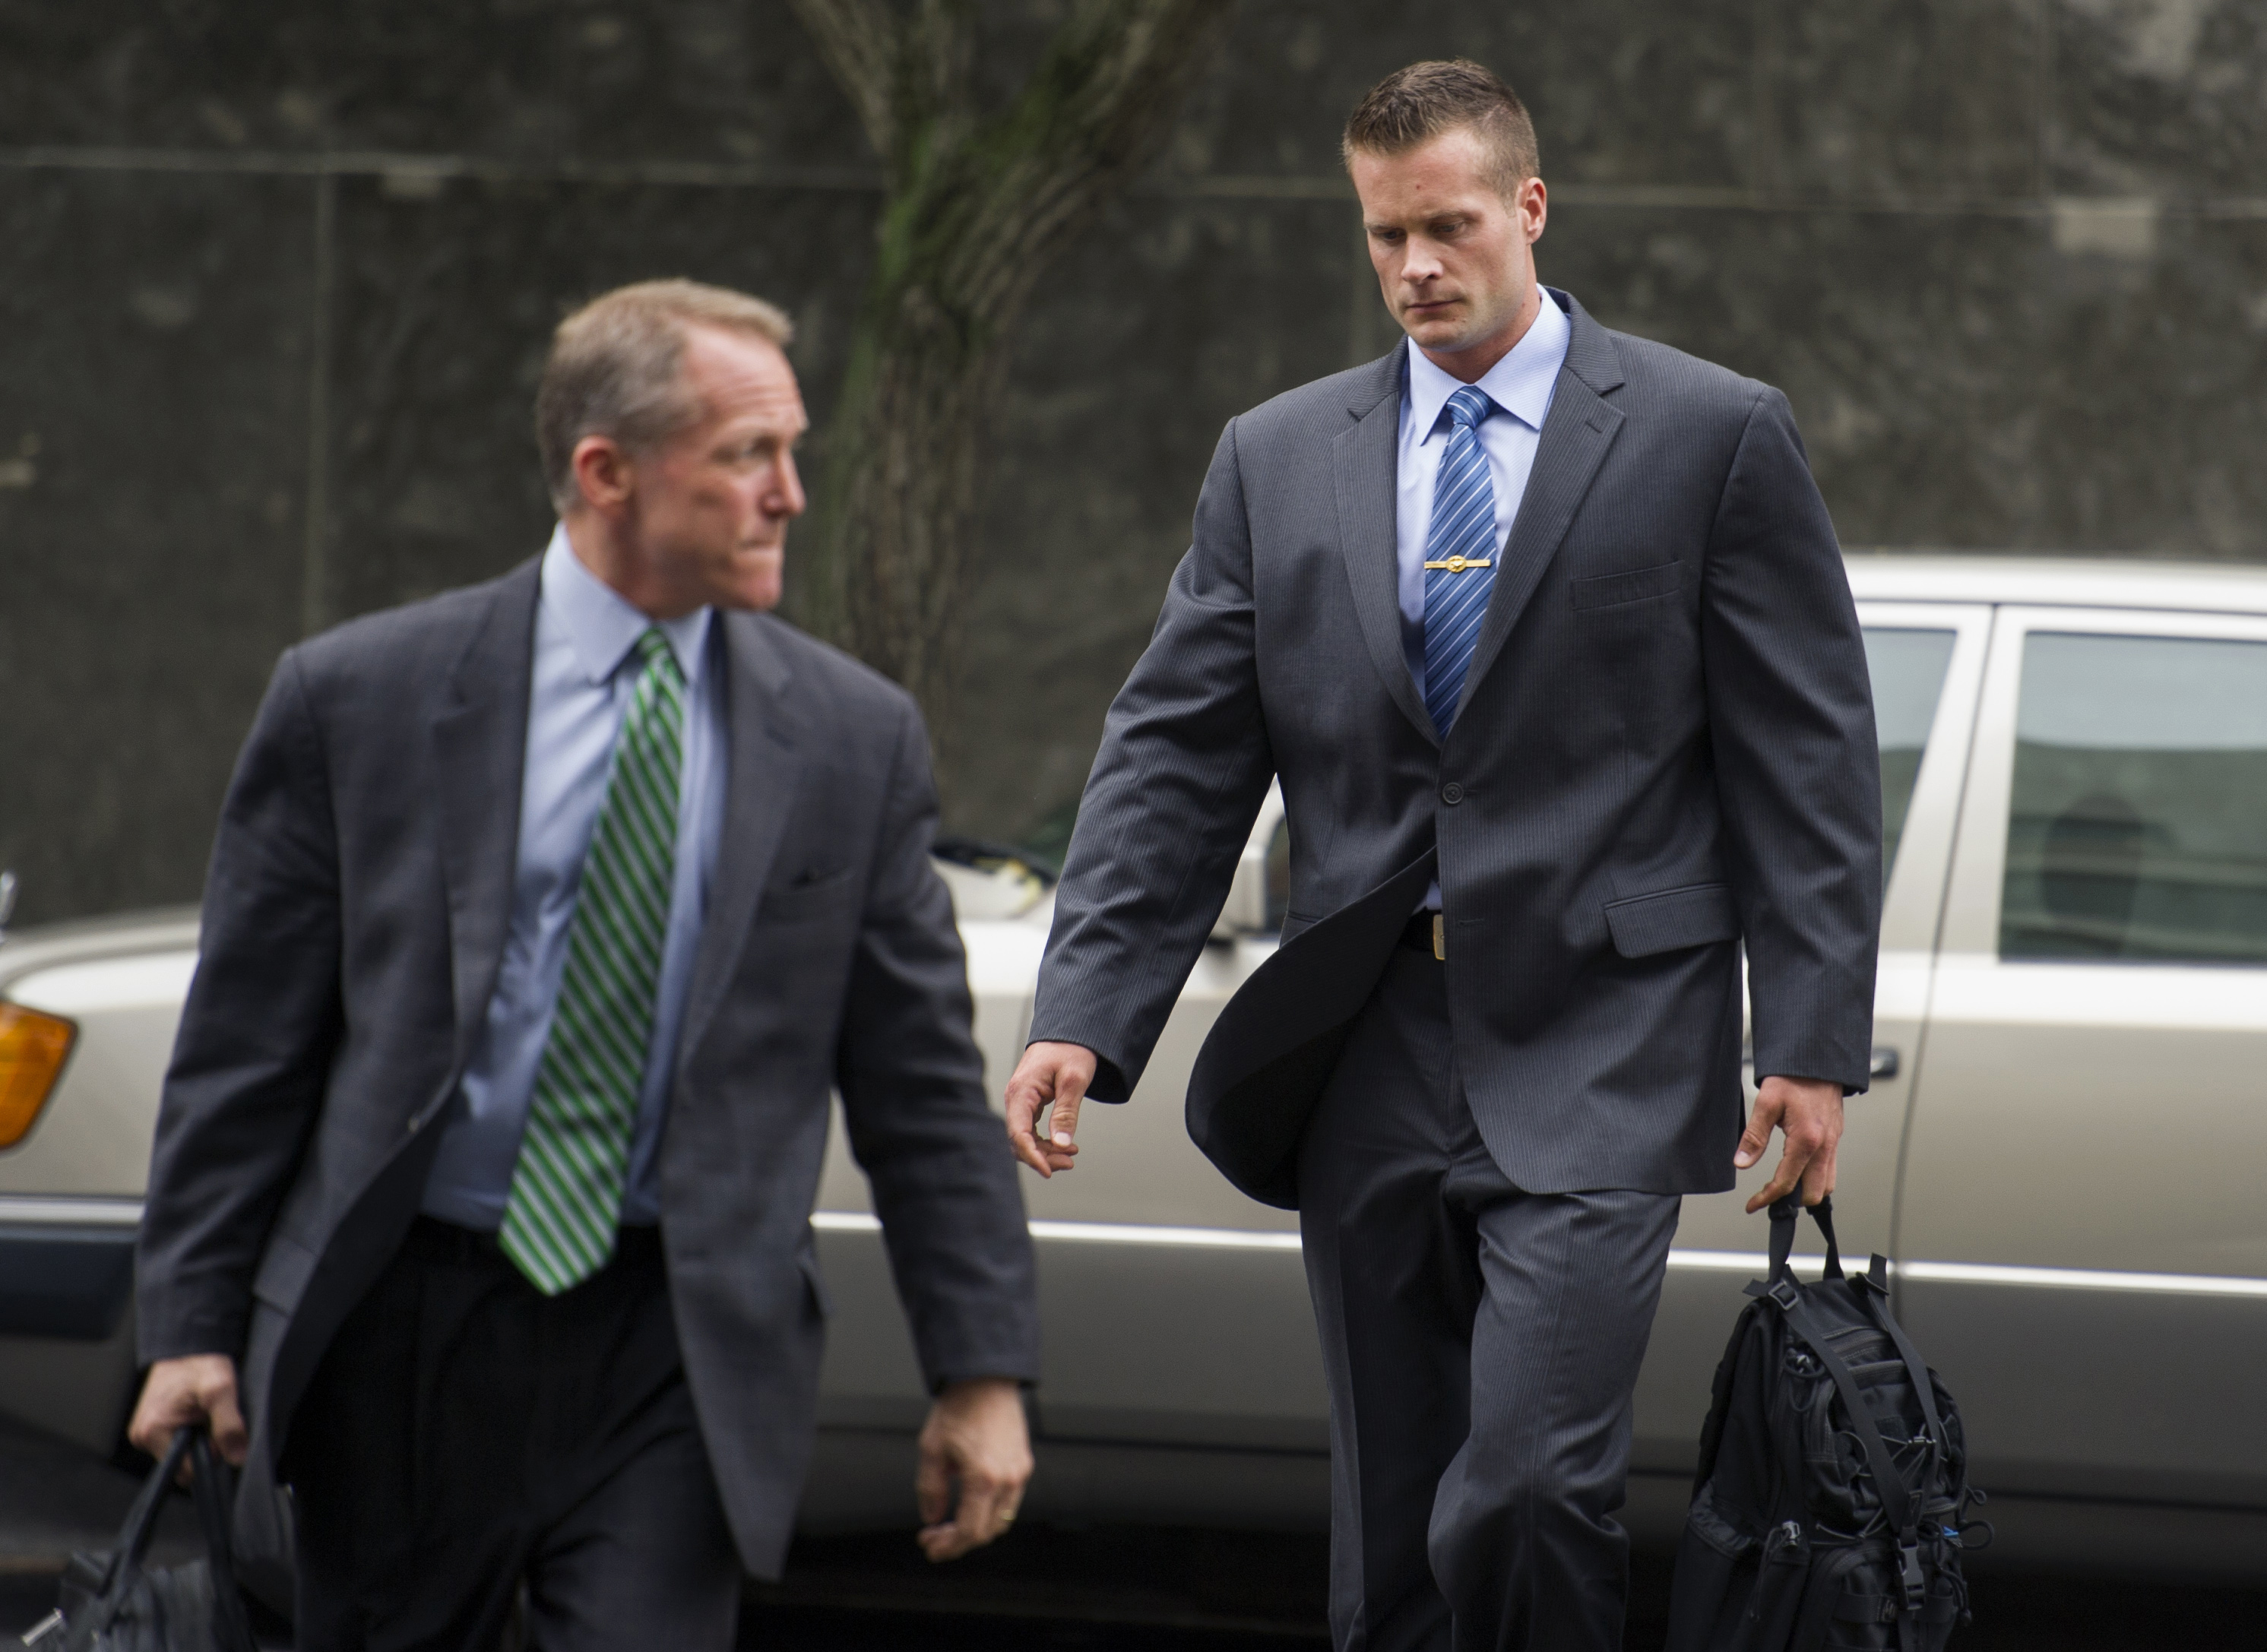 Former Blackwater guard Evan Liberty, right, arrives at a federal court in Washington to stand trial on June 11, 2014